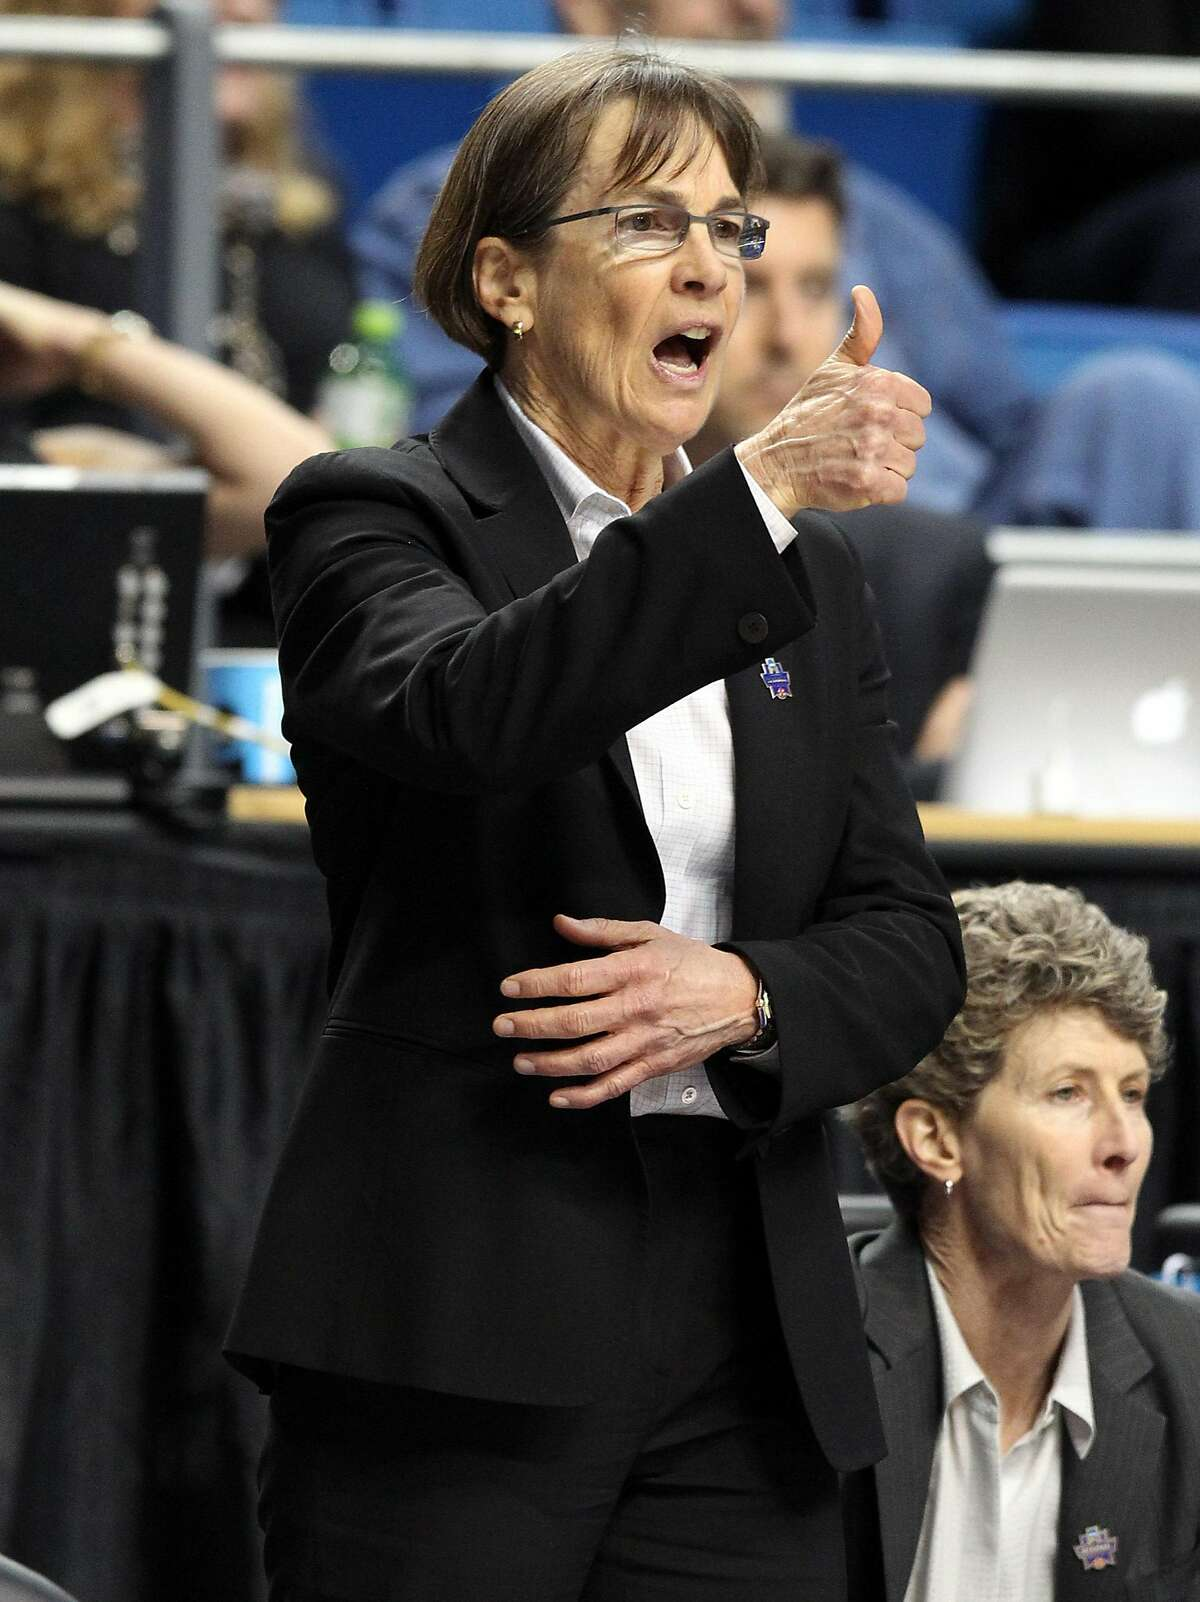 Stanford coach Tara VanDerveer calls a play during the team's regional semifinal against Notre Dame in the NCAA women's college basketball tournament in Lexington, Ky., Friday, March 25, 2016. Stanford won 90-84. (AP Photo/James Crisp)